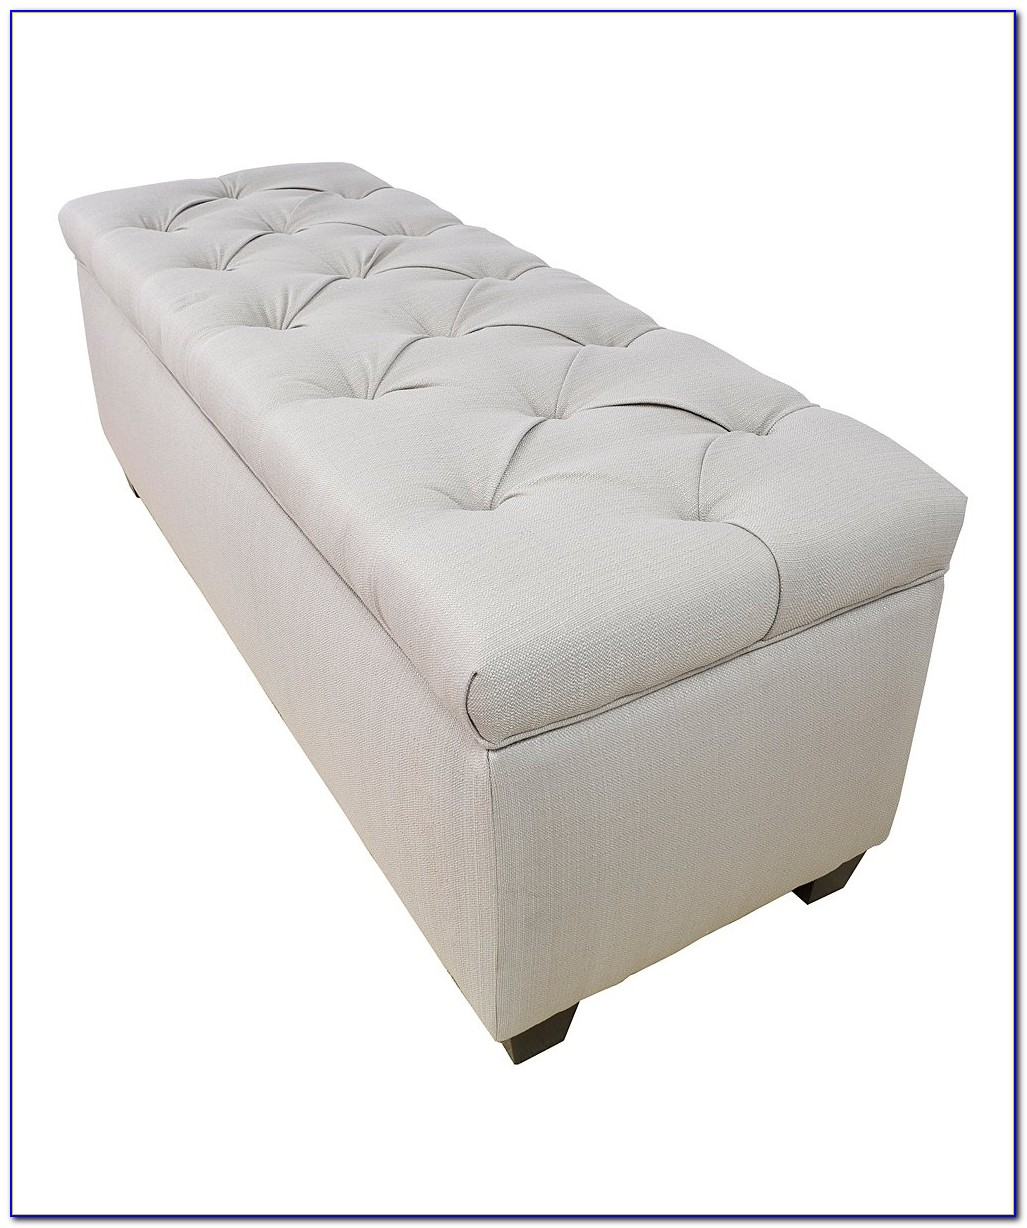 White Leather Tufted Storage Bench Ottoman